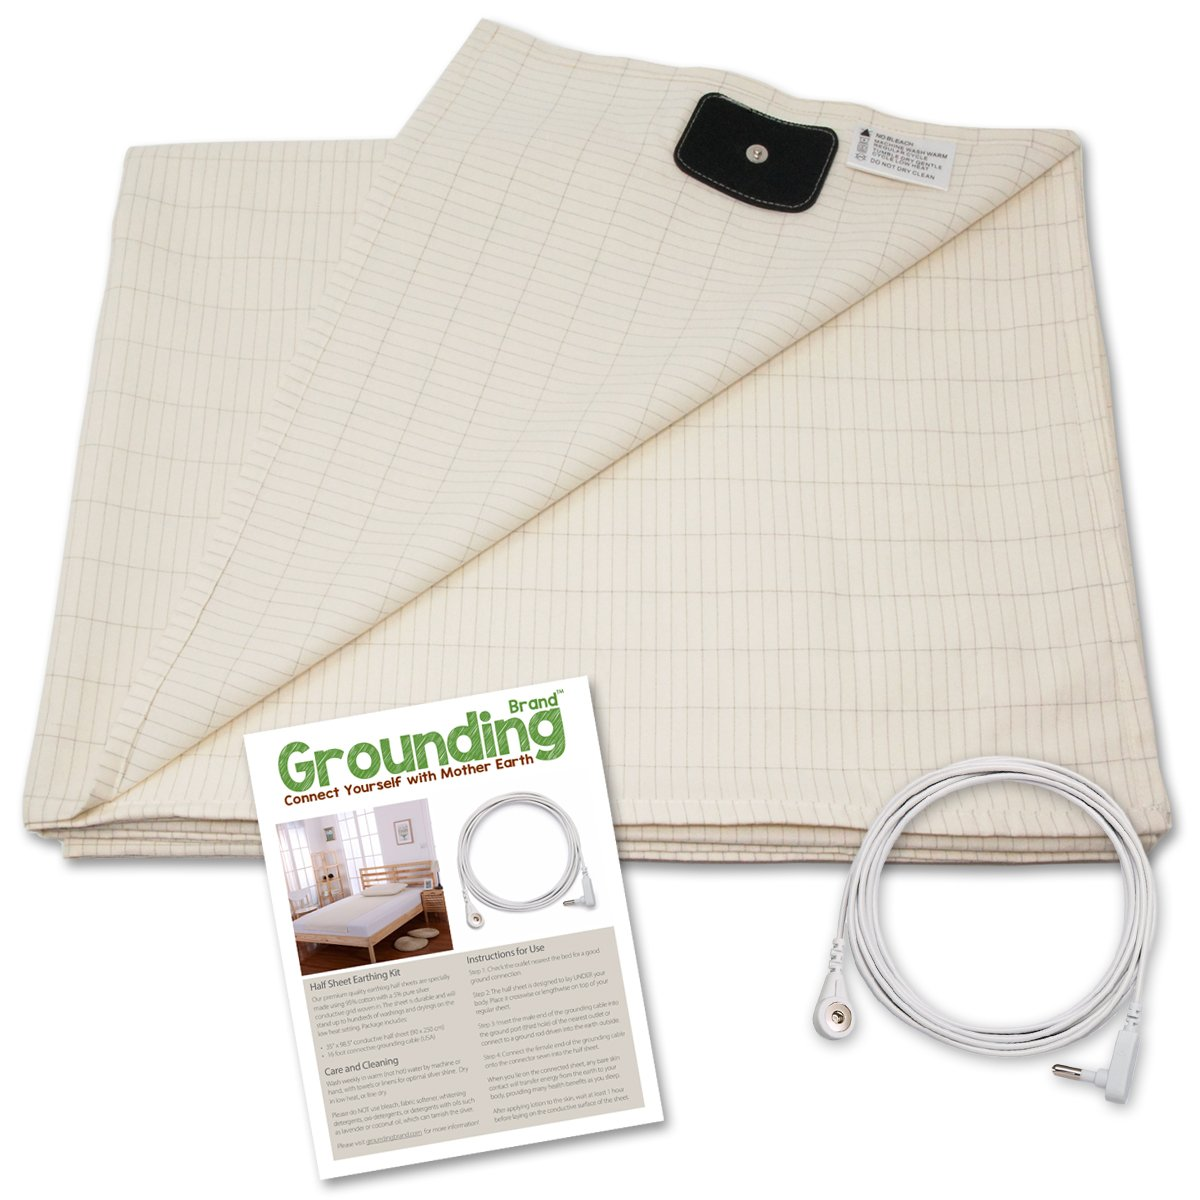 Grounding Brand Half Sheet with Earth Connection Cord - Silver Antimicrobial Conductive Mat for Better Sleep, EMF Protection and Healthy Energy, Large 98x35.5 fits Full, Queen, King, Tan by Grounding Brand